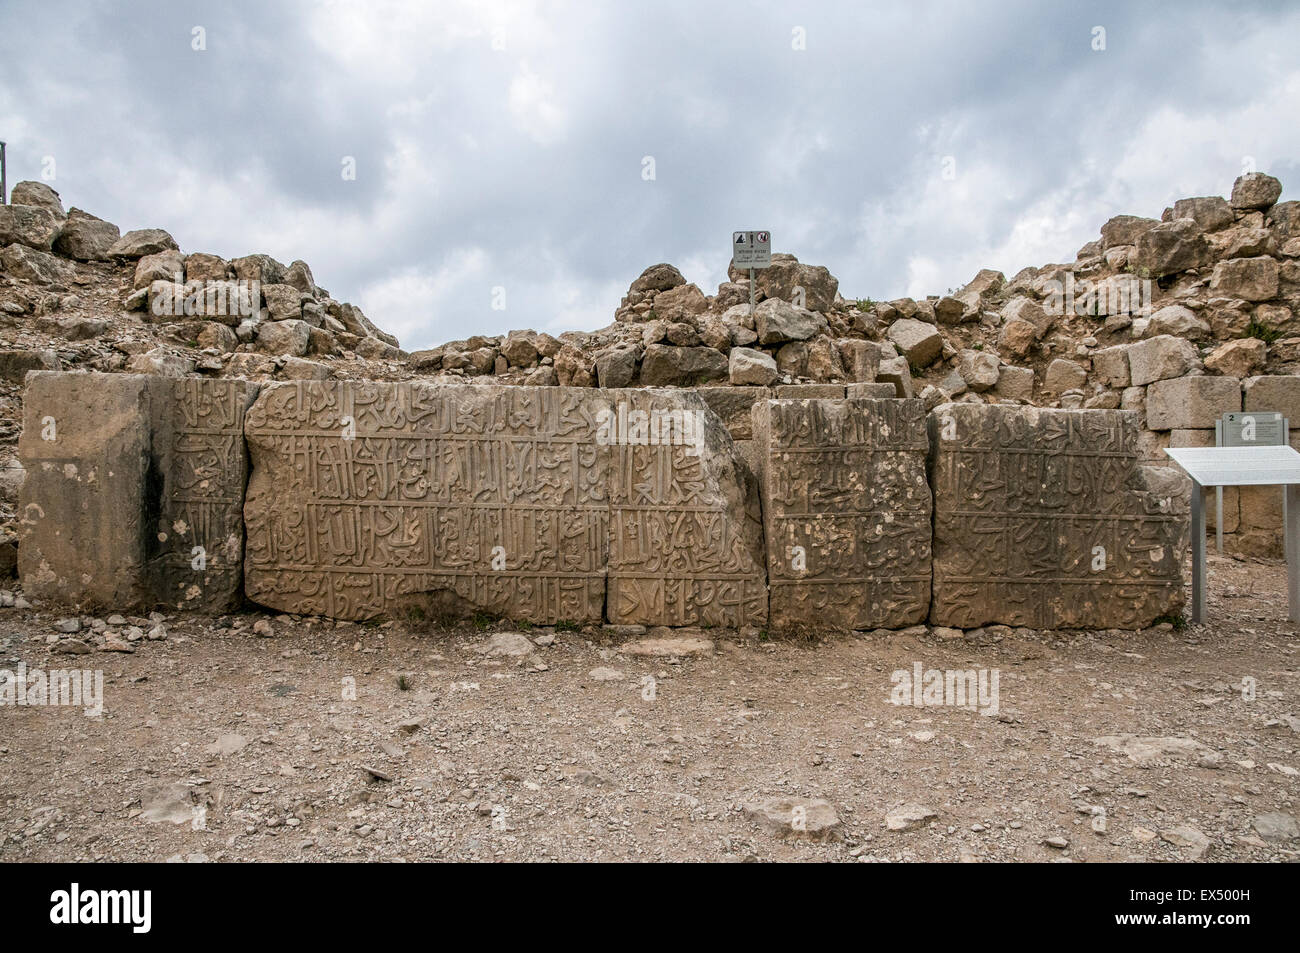 Inscription dating from 1275 at the Nimrod (Namrud) Fortress or Nimrod Castle is a medieval Muslim castle situated - Stock Image